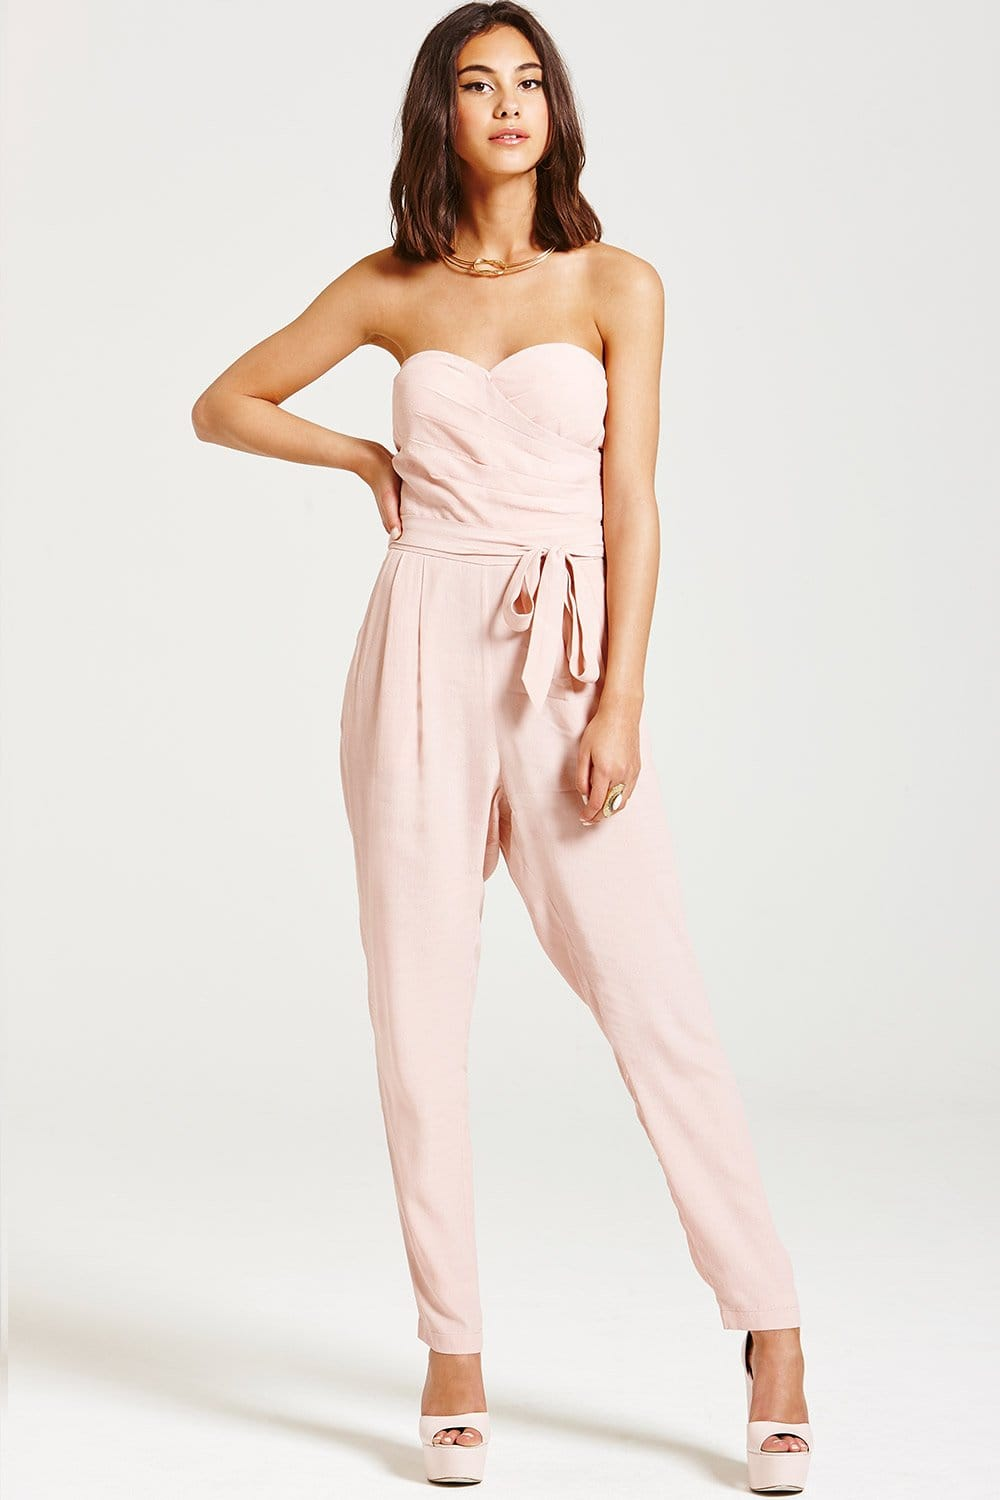 31fa8ca85e0e Outlet Girls On Film Dusty Pink Bandeau Jumpsuit - Outlet Girls On Film  from Little Mistress UK